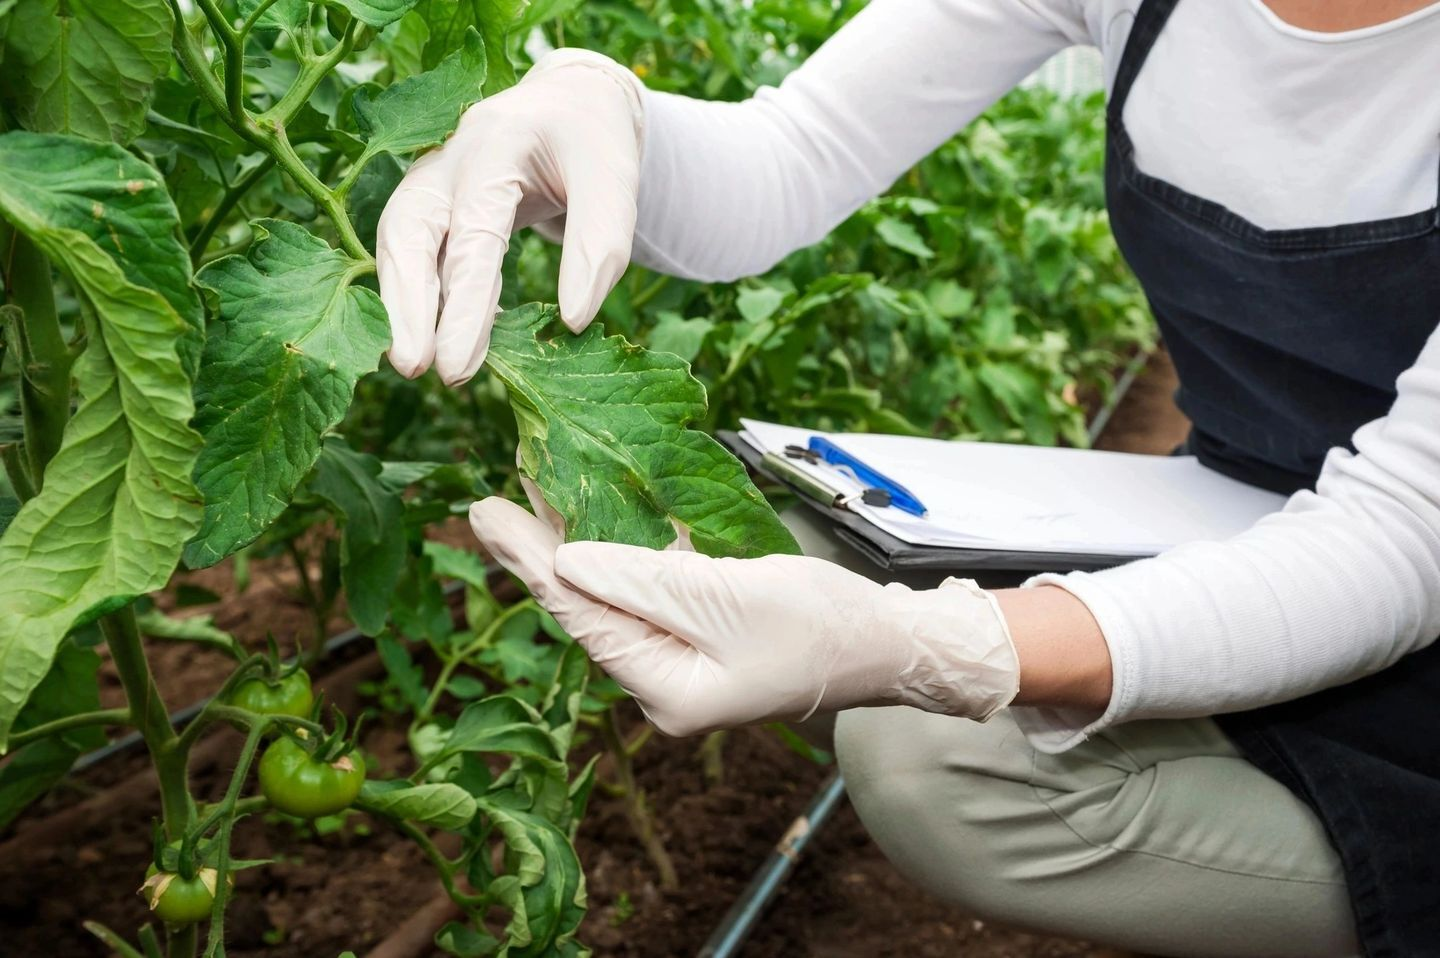 A woman wearing white gloves holding a plant